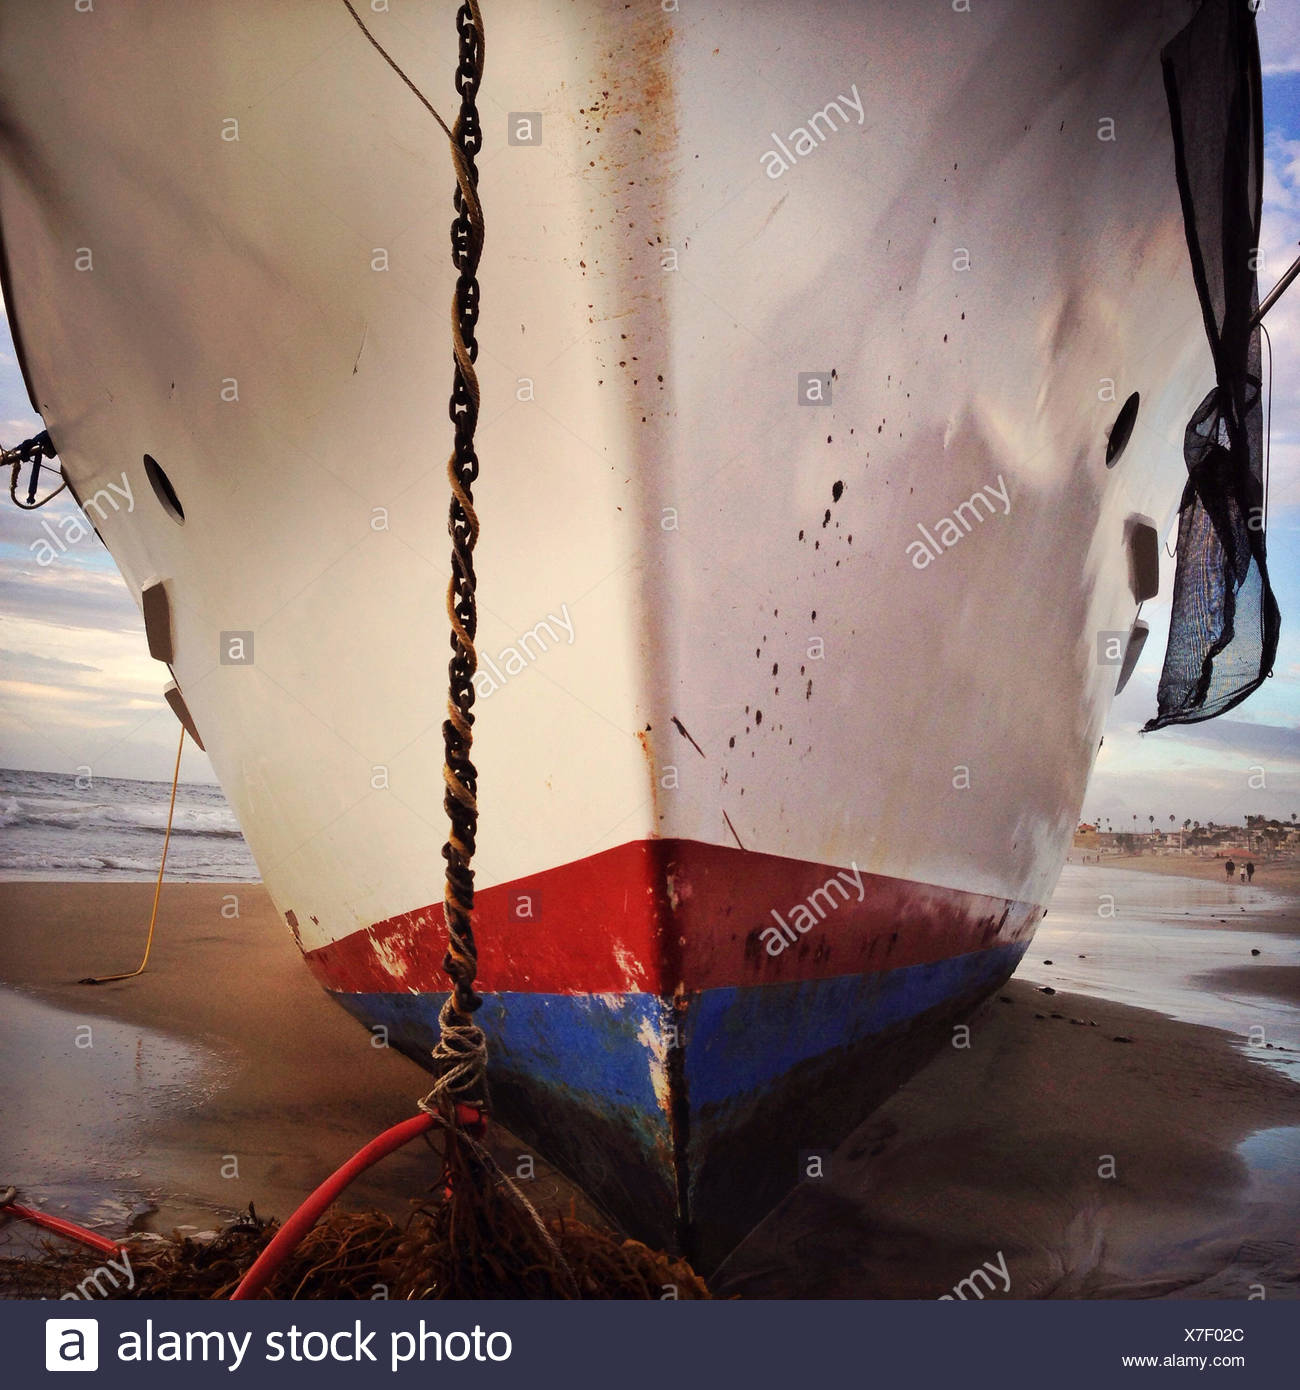 Close-up of bow of boat on beach - Stock Image